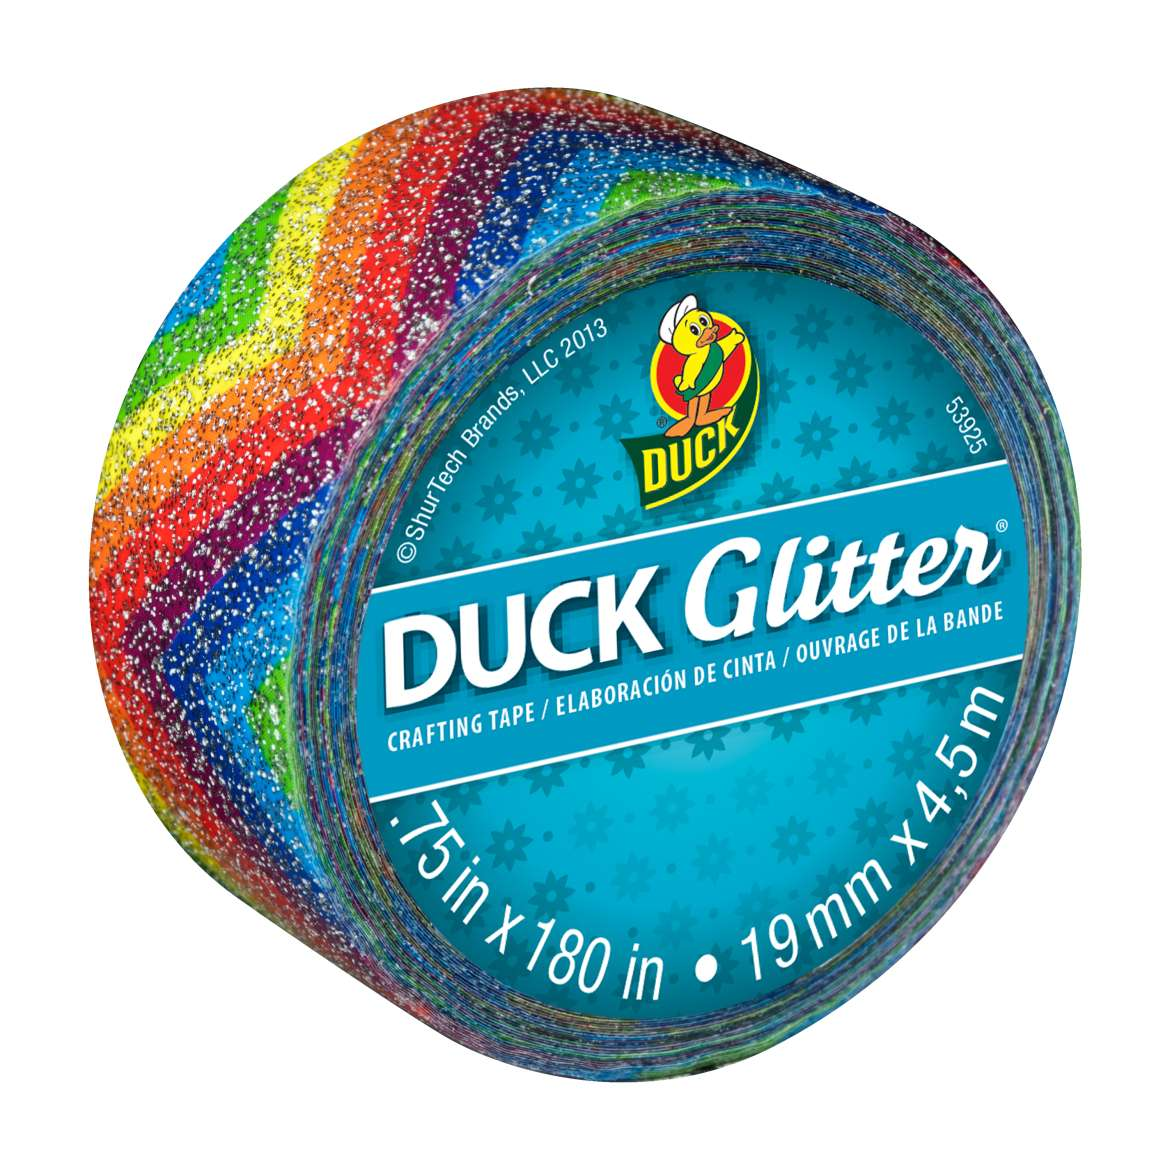 Duck Glitter® Crafting Tape Mini-Rolls Image